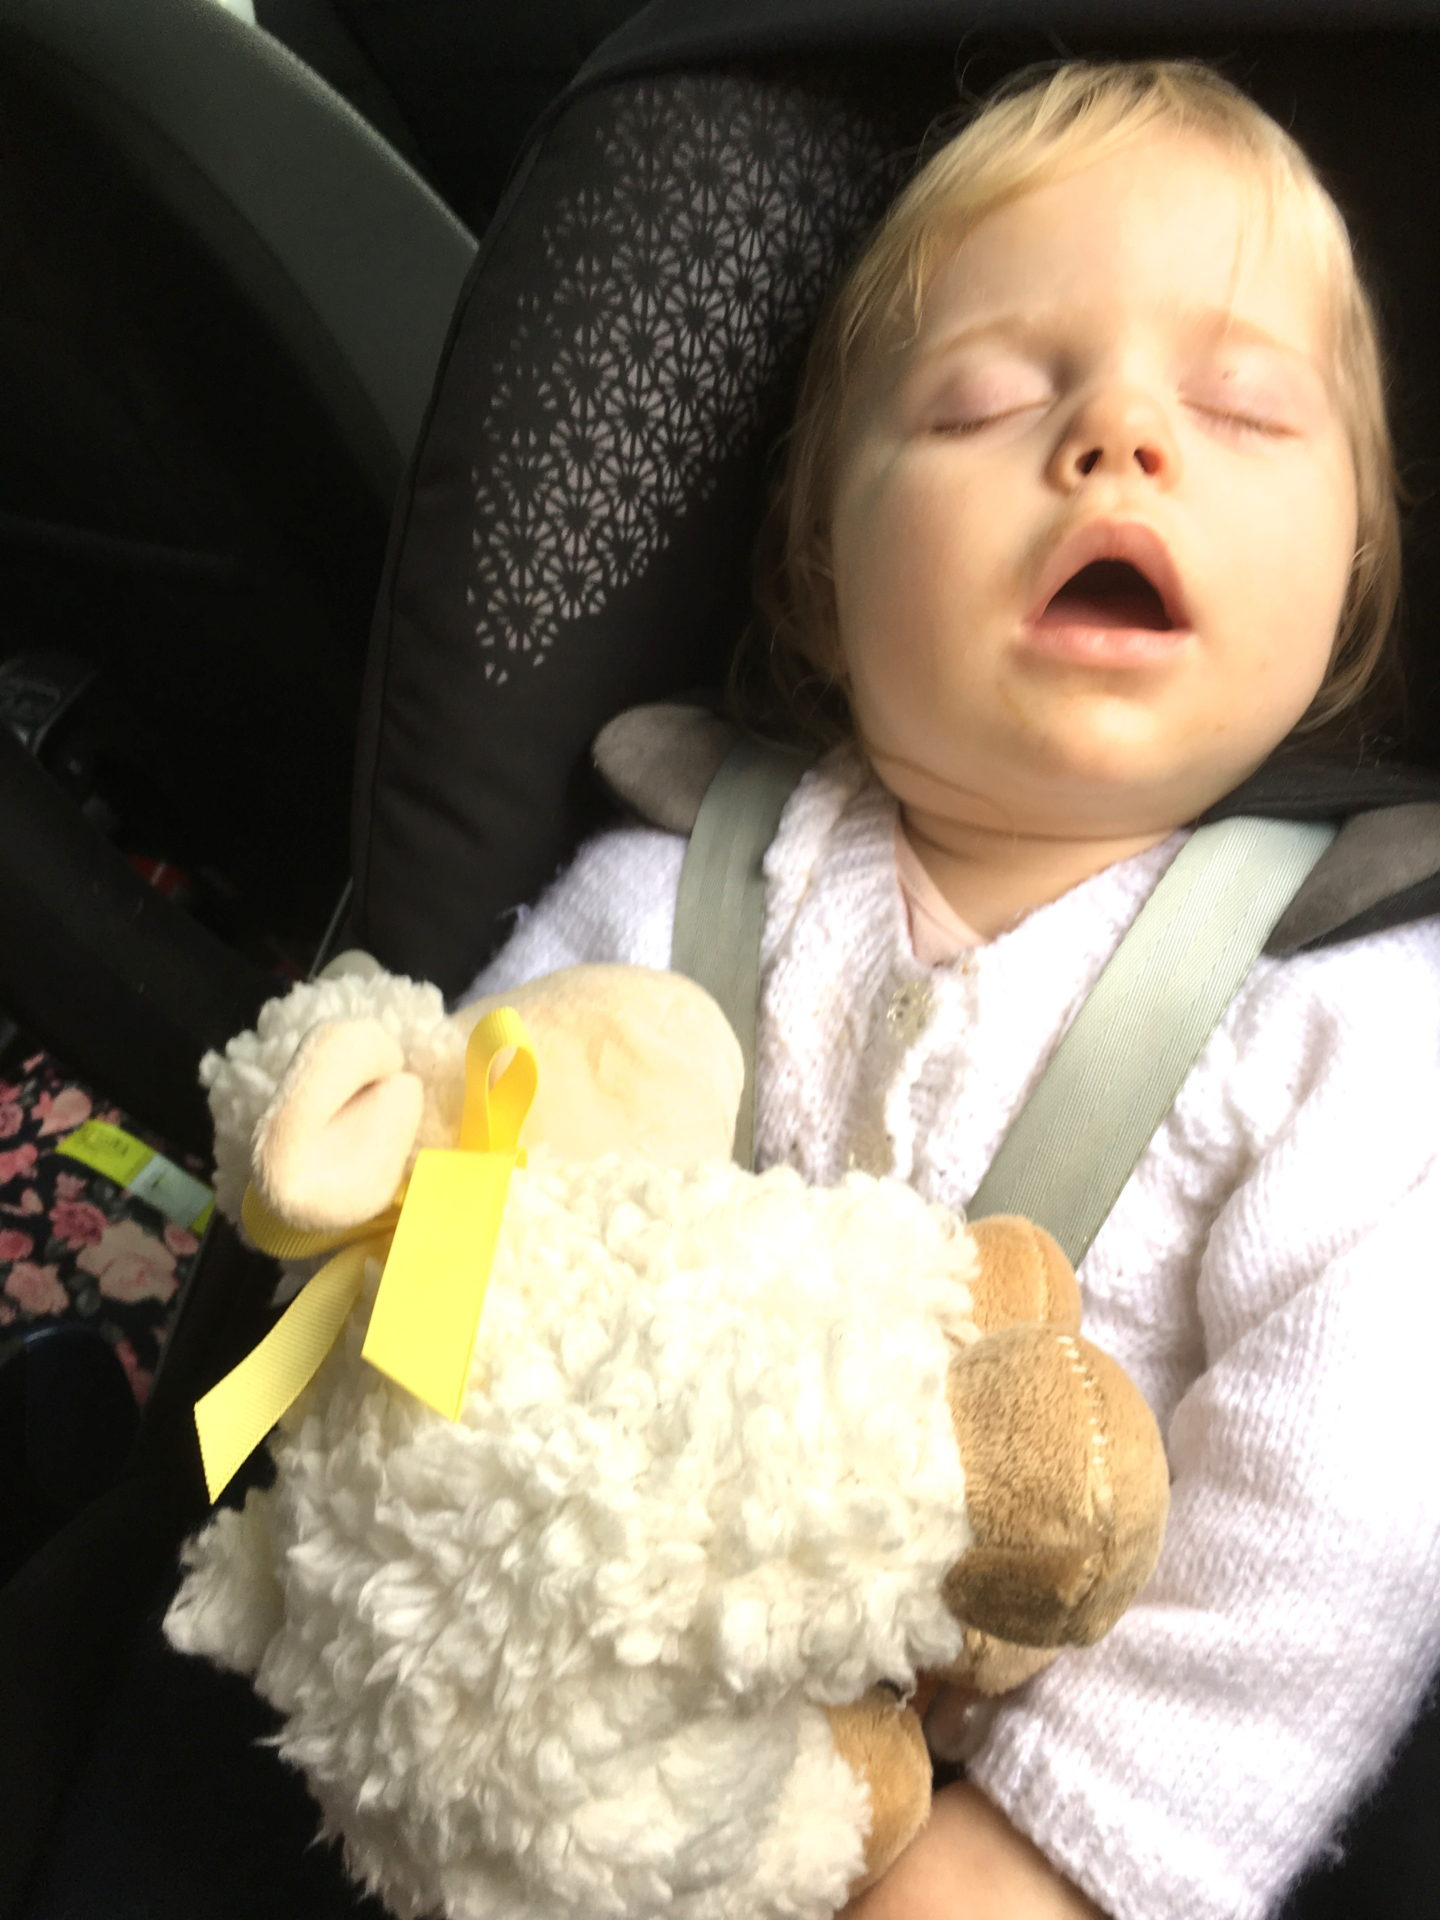 14 month old girl asleep in car seat holding toy lamb